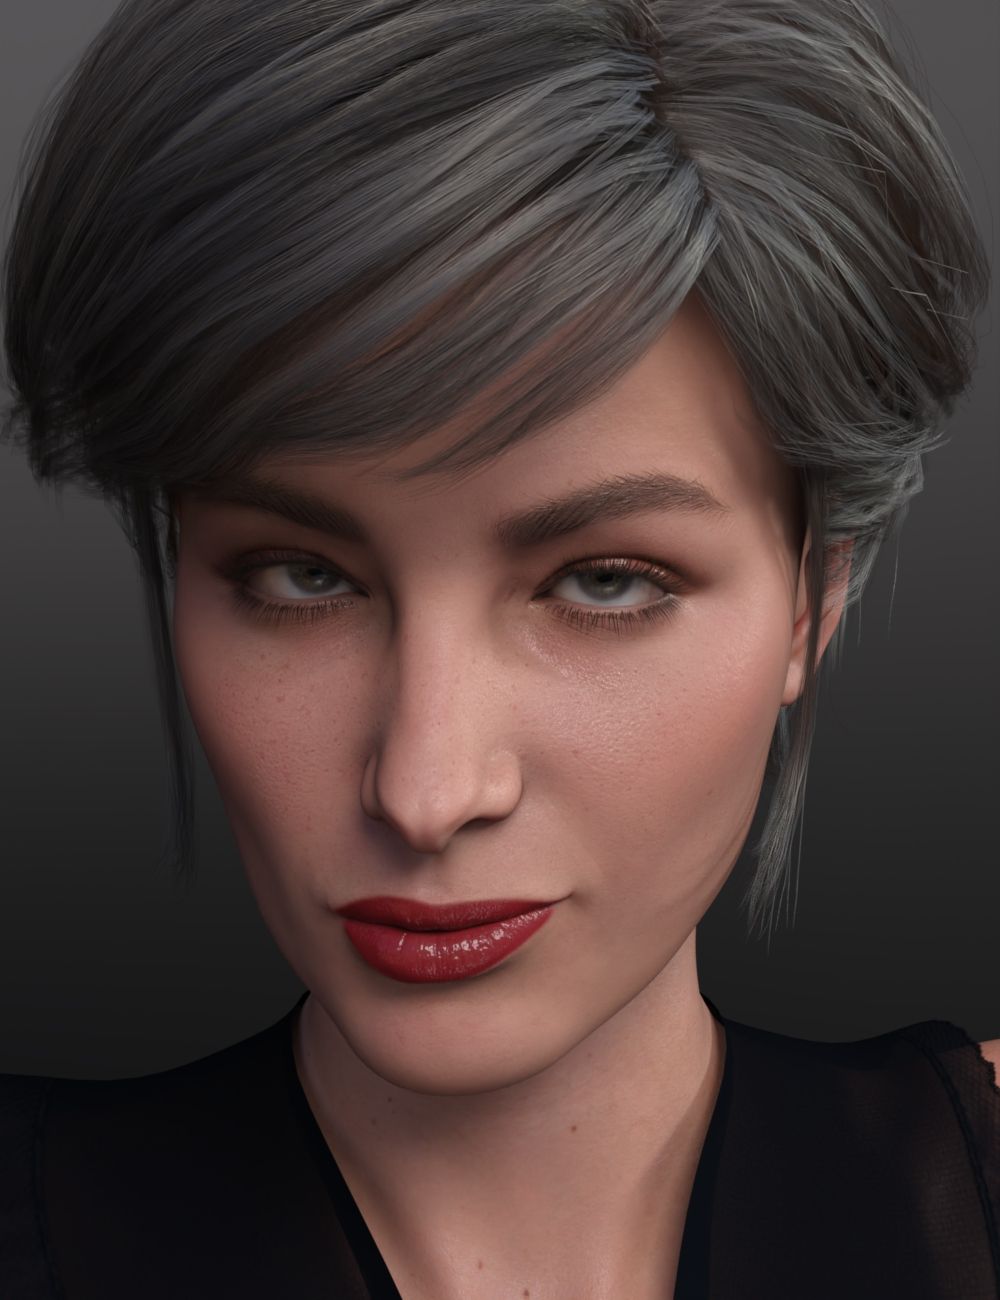 Alternative Shapes for Victoria 8.1 by: AliveSheCried, 3D Models by Daz 3D